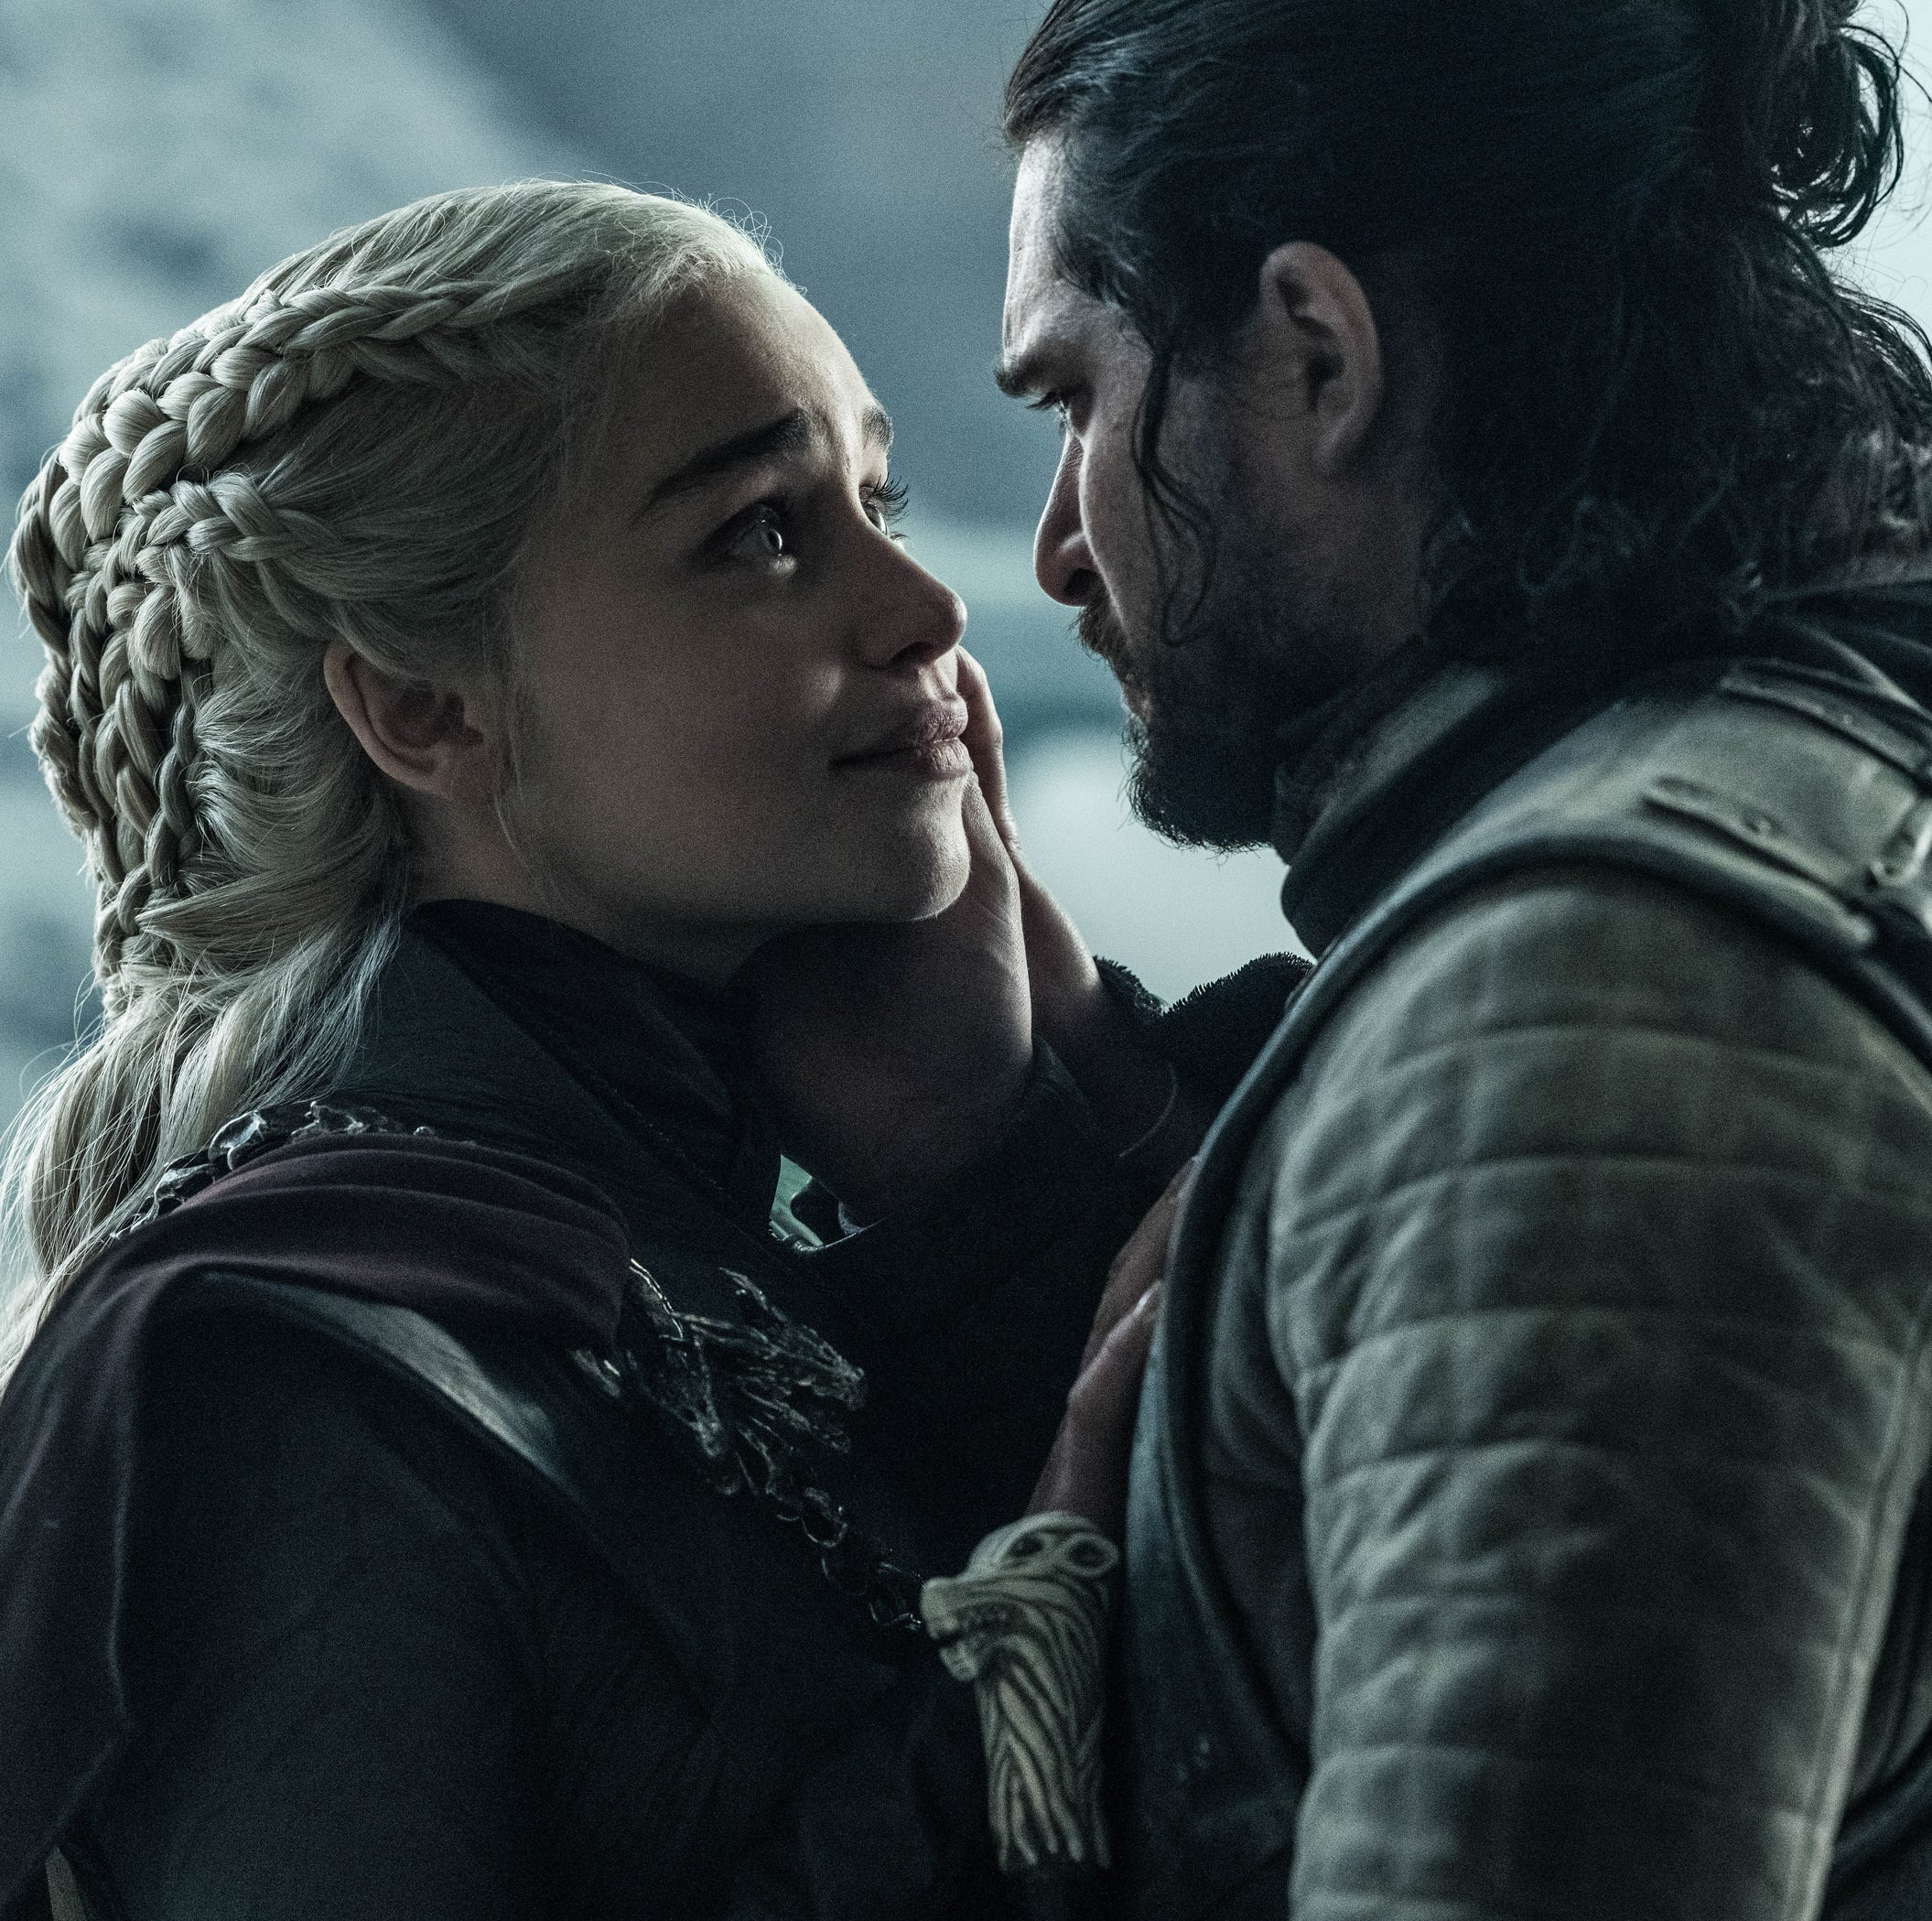 Danerys Targaryen (Emilia Clarke), left, and Jon Snow (Kit Harington) have their final embrace.